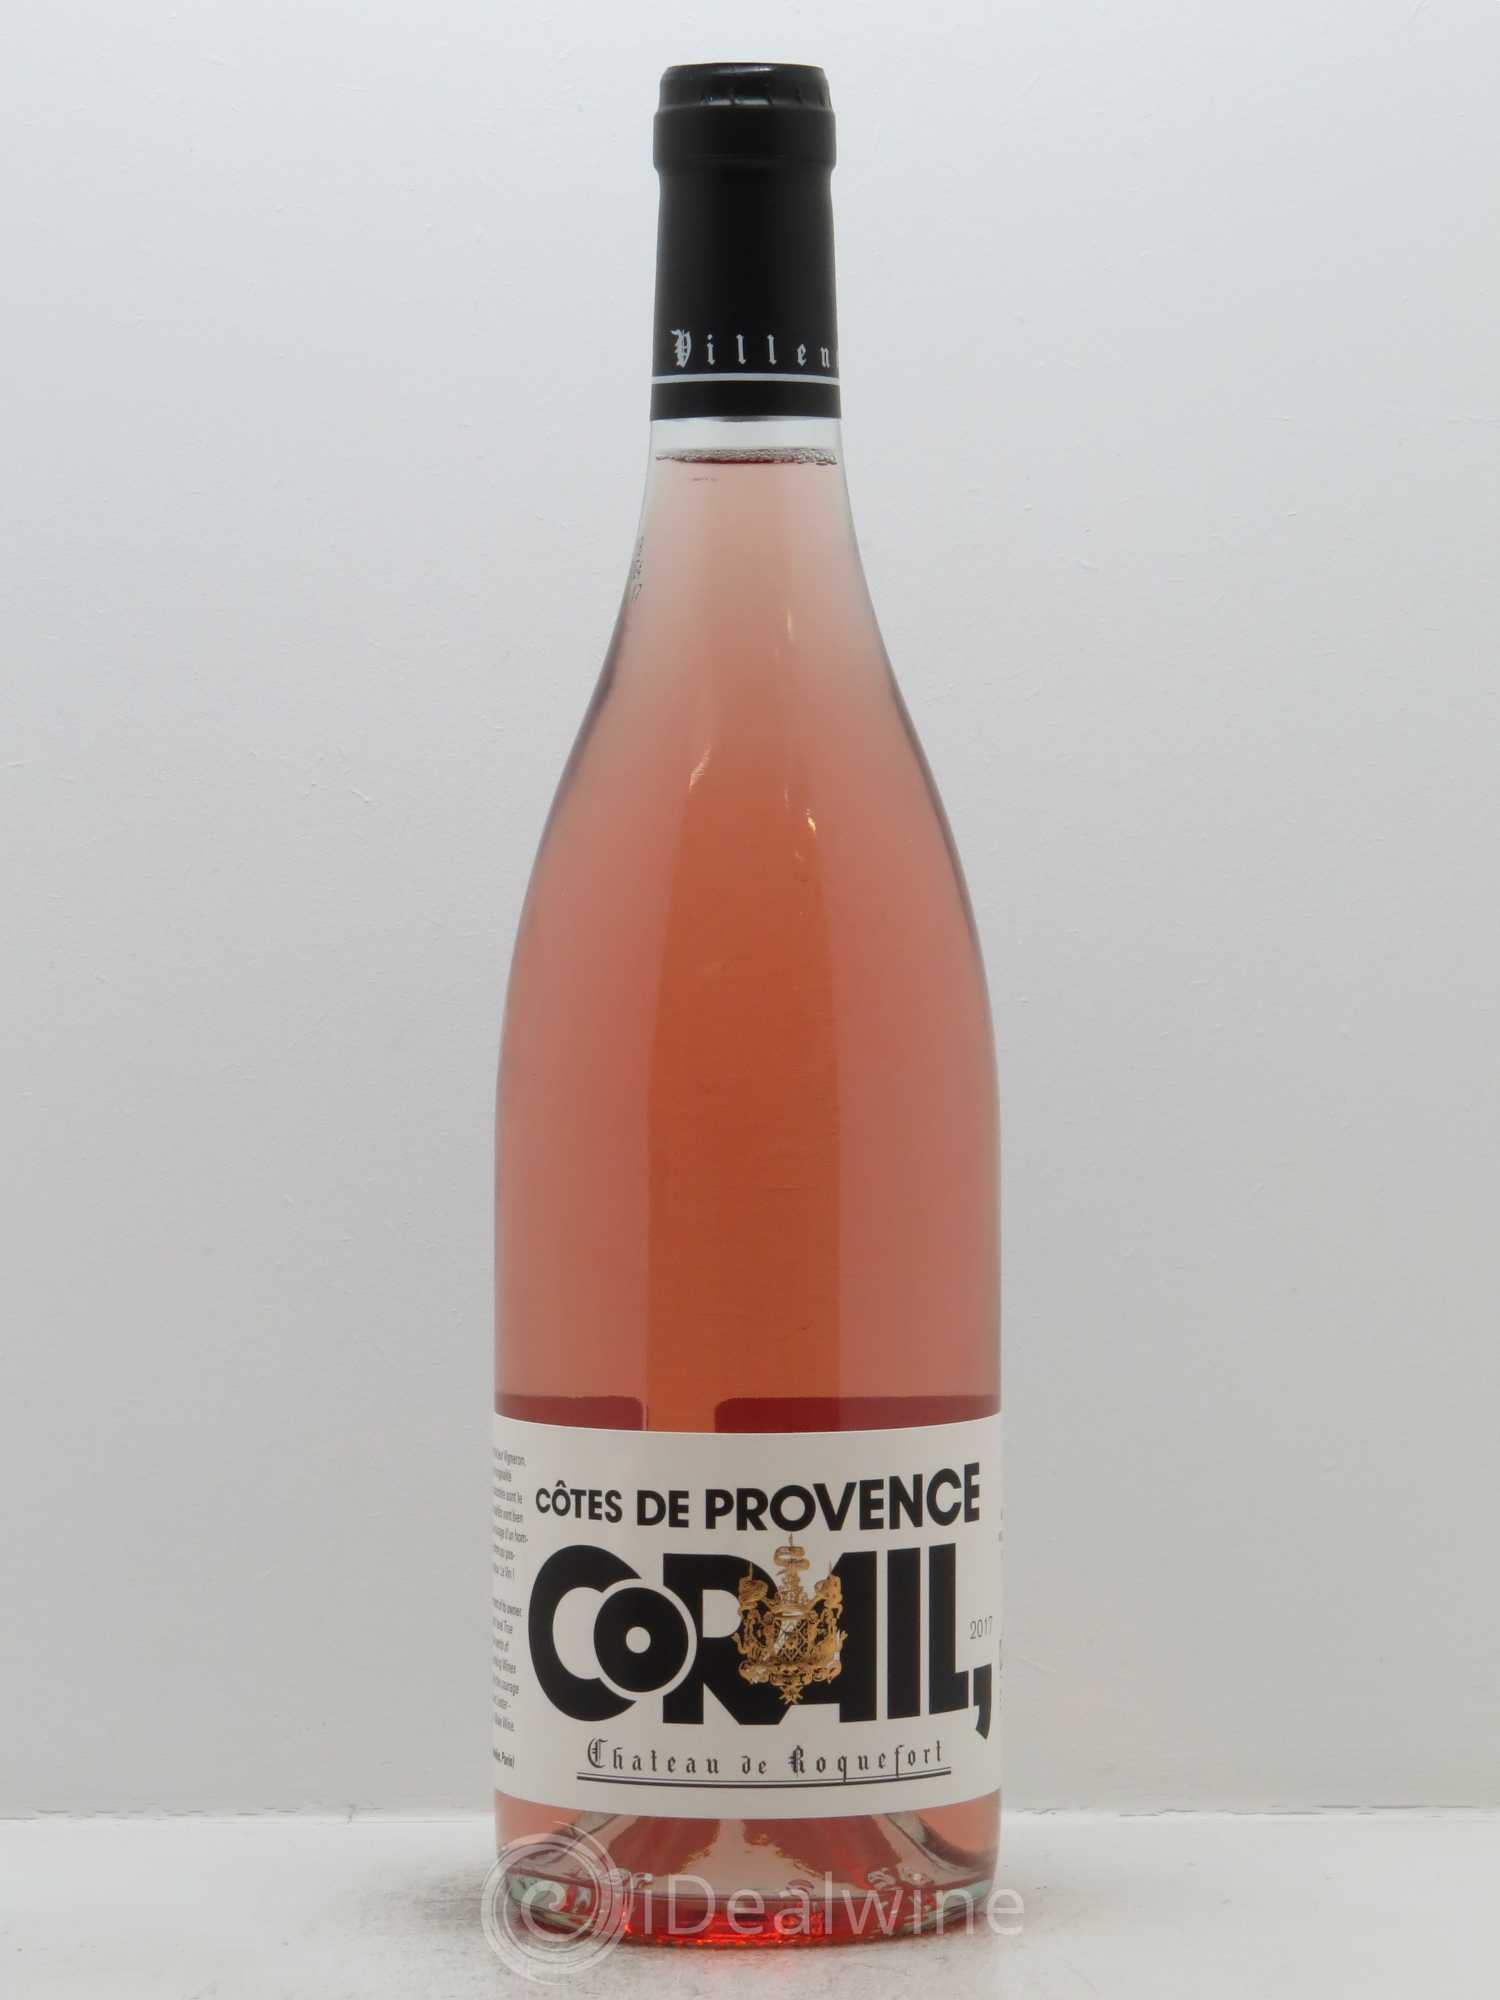 Côtes de Provence Château de Roquefort Corail  2017 - Lot of 1 Bottle